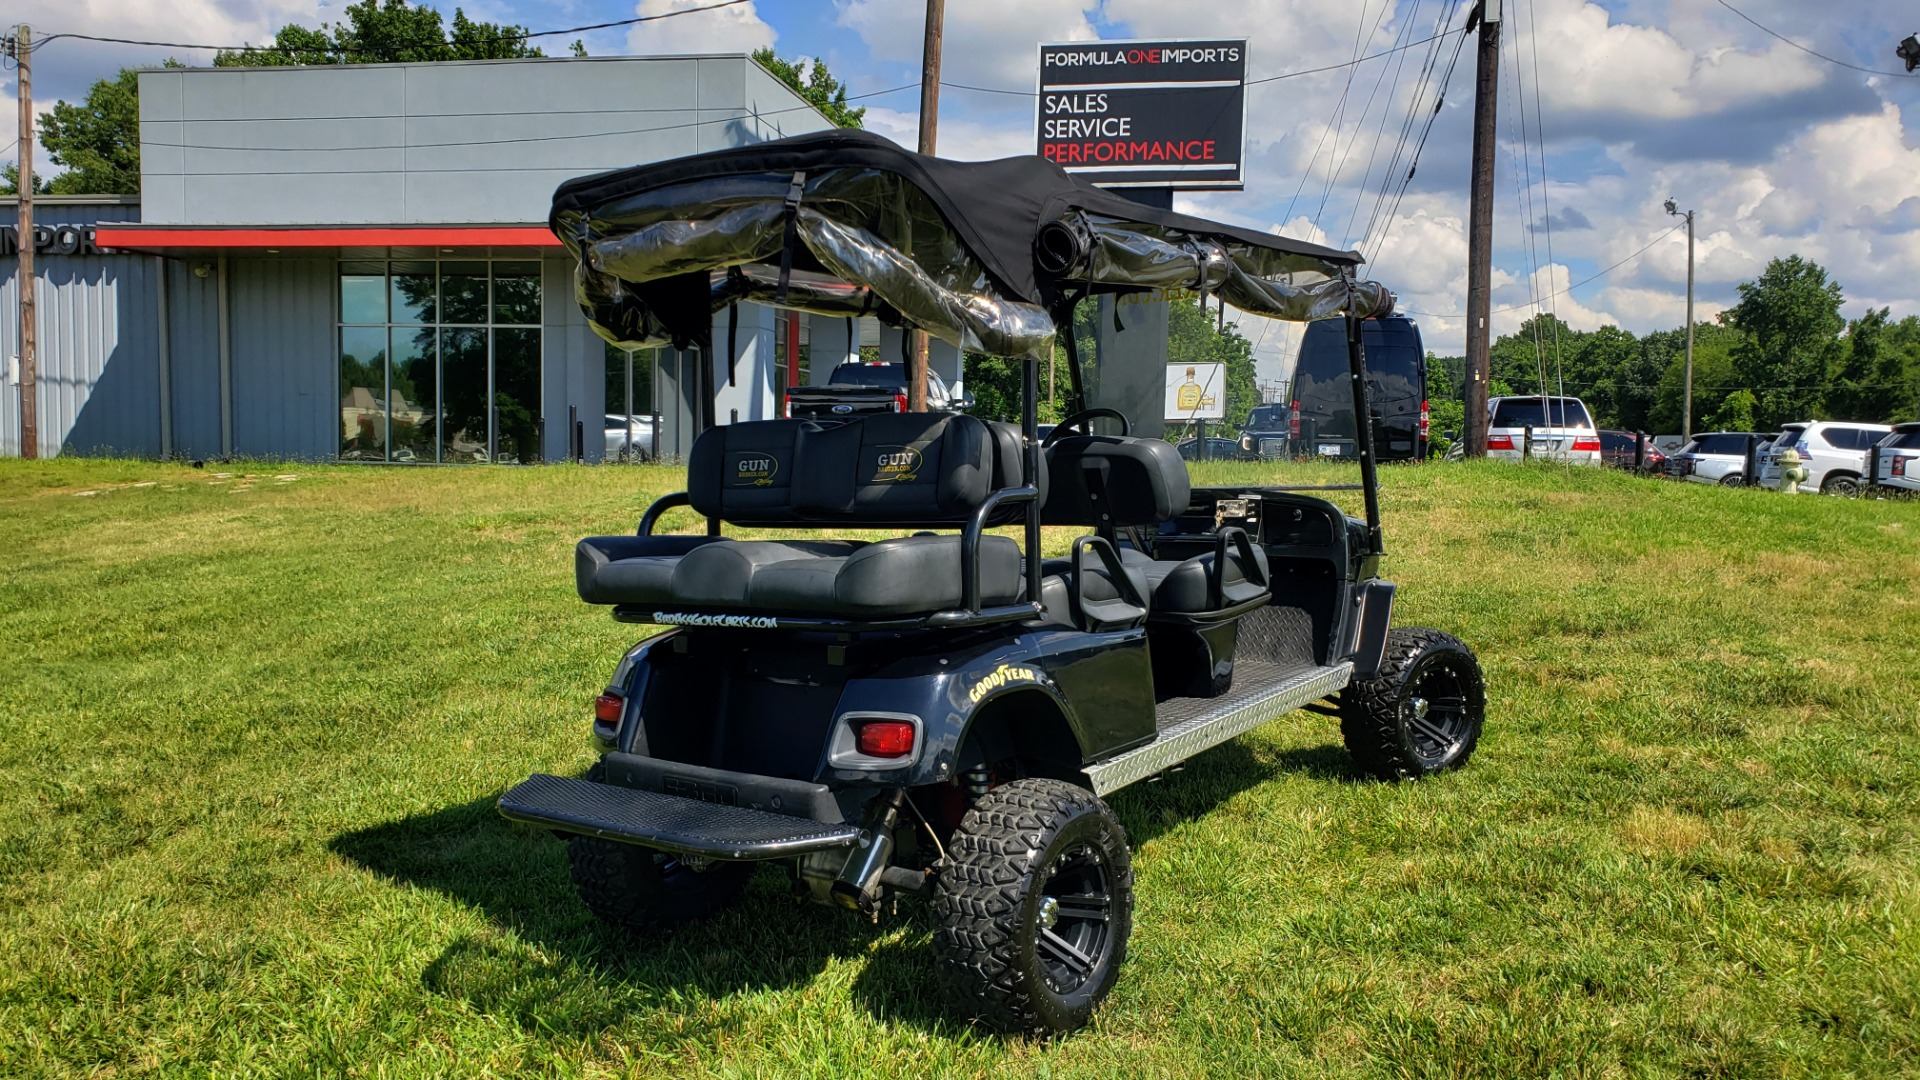 Used 2010 E-Z-GO GOLF CART 24HP / 3-ROW SEATING FOR 6 / SUSPENSION LIFT / SONY STEREO for sale $16,995 at Formula Imports in Charlotte NC 28227 22